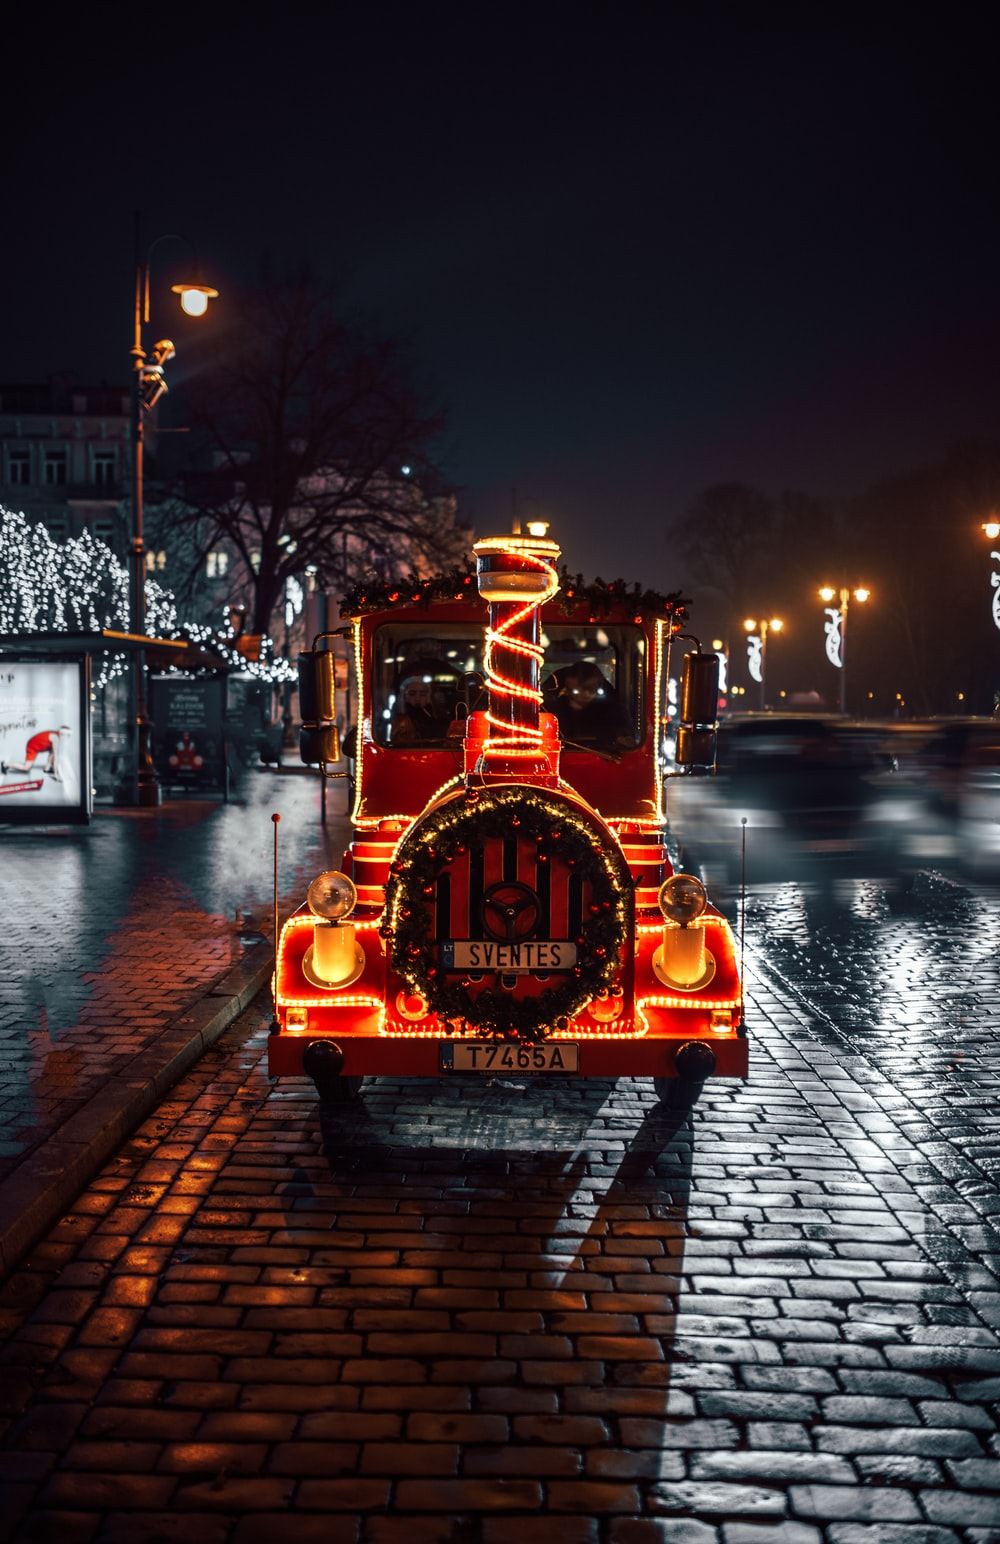 red and black train with lighted string lights during night time